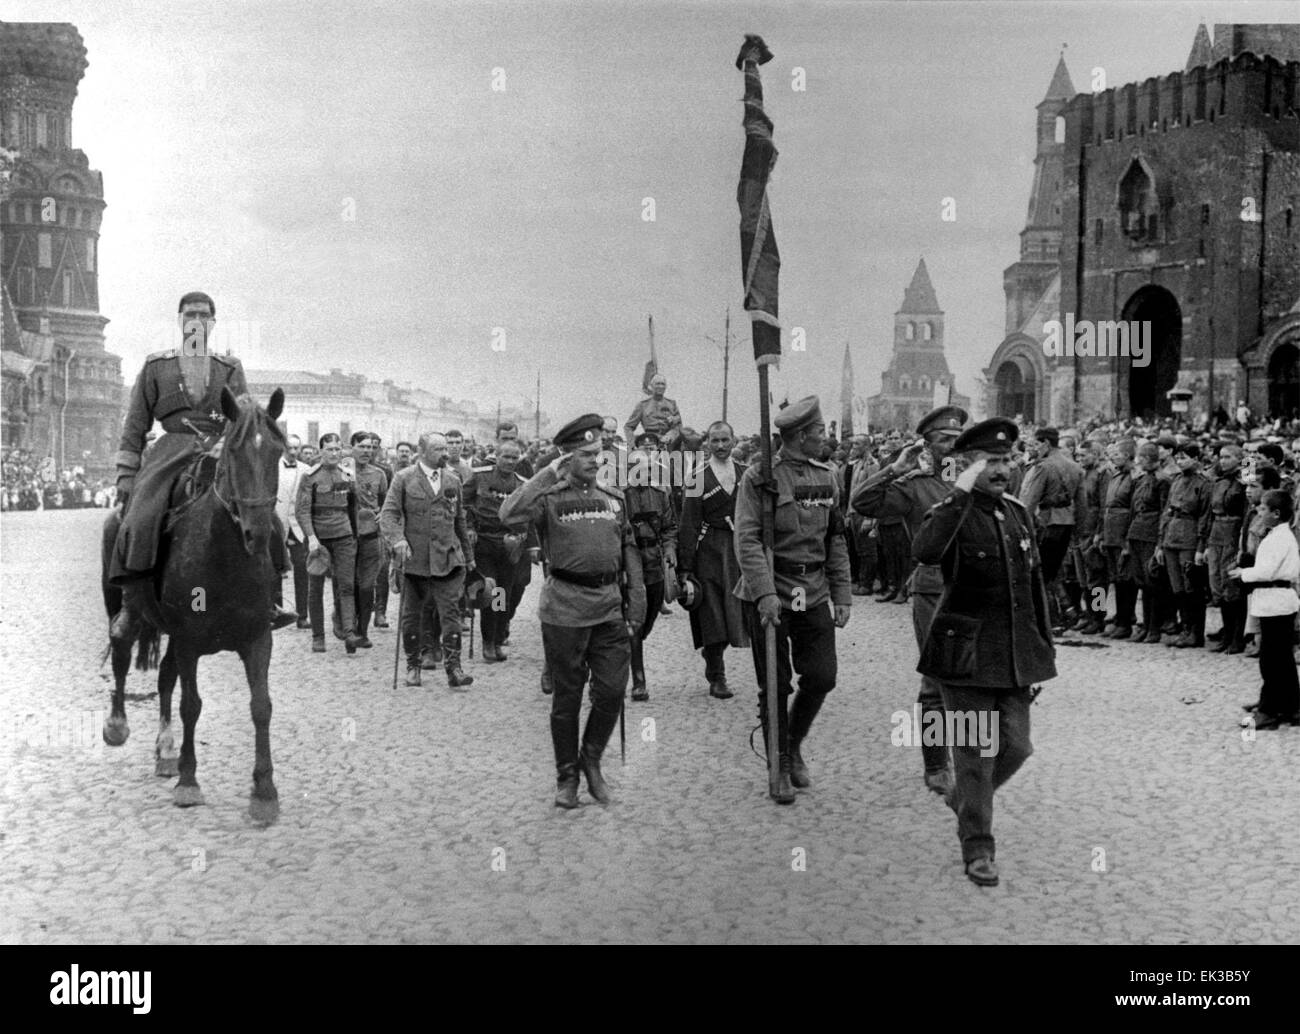 Moscow. A military unit marches downtown Moscow prior to its transportation to the battlefront in June 1917. Reprophoto - Stock Image